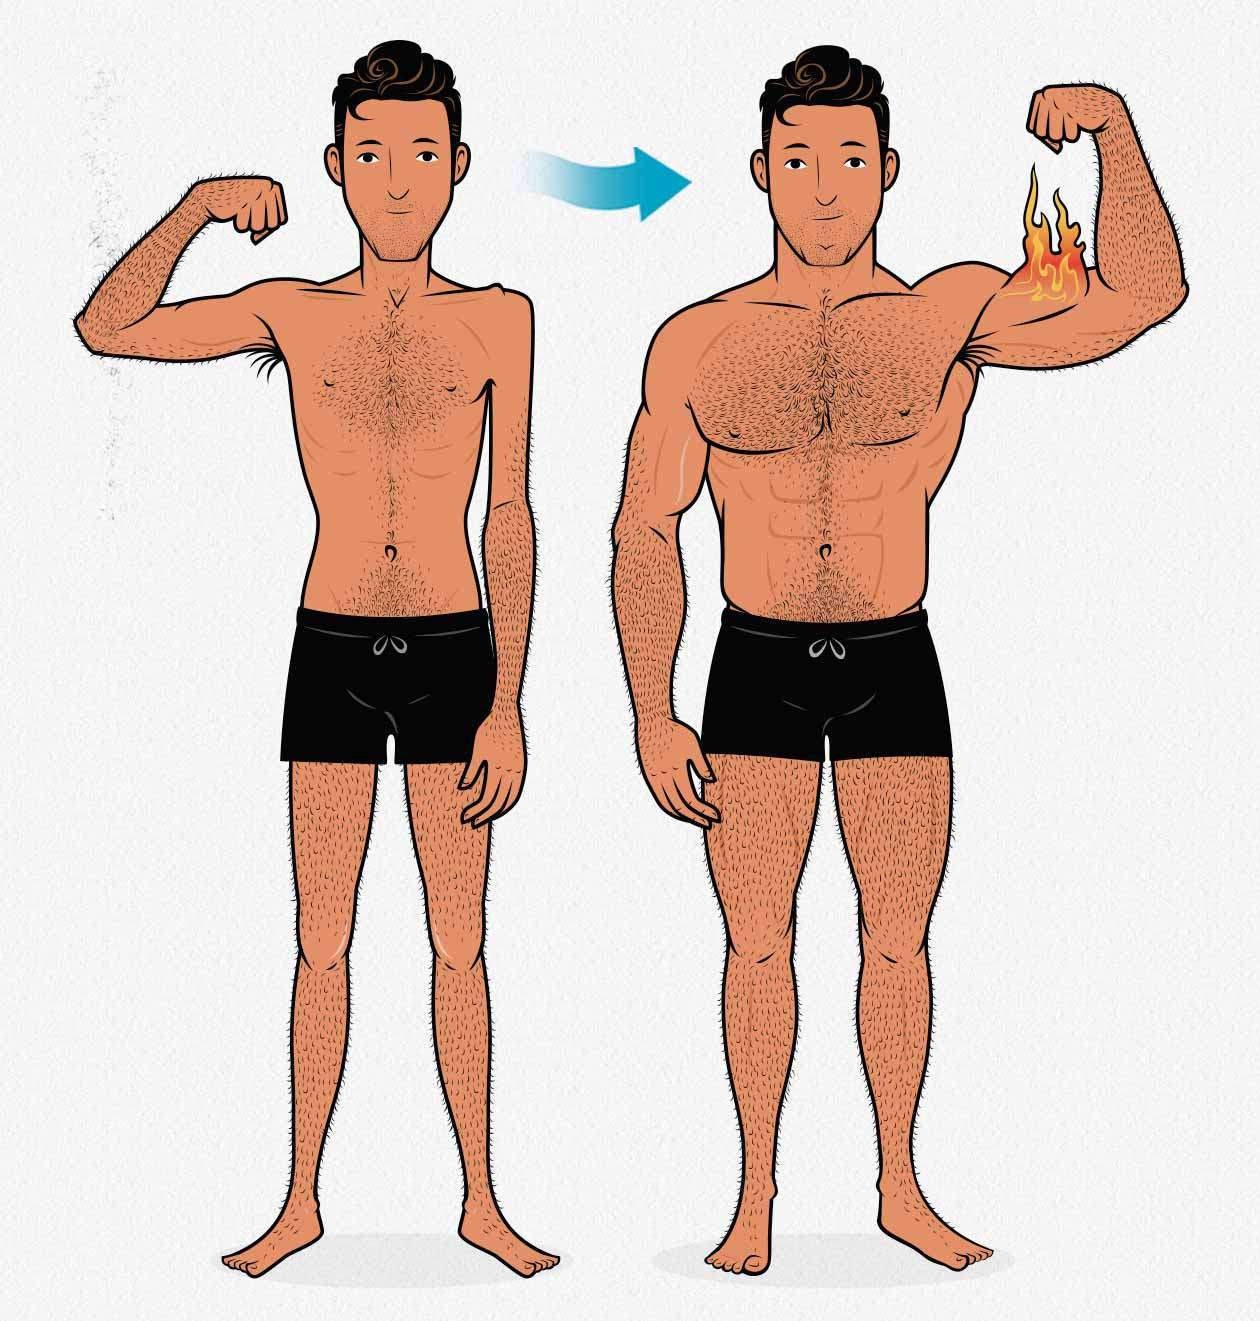 Before and after illustration of an ectomorph's progress as he gains muscle.